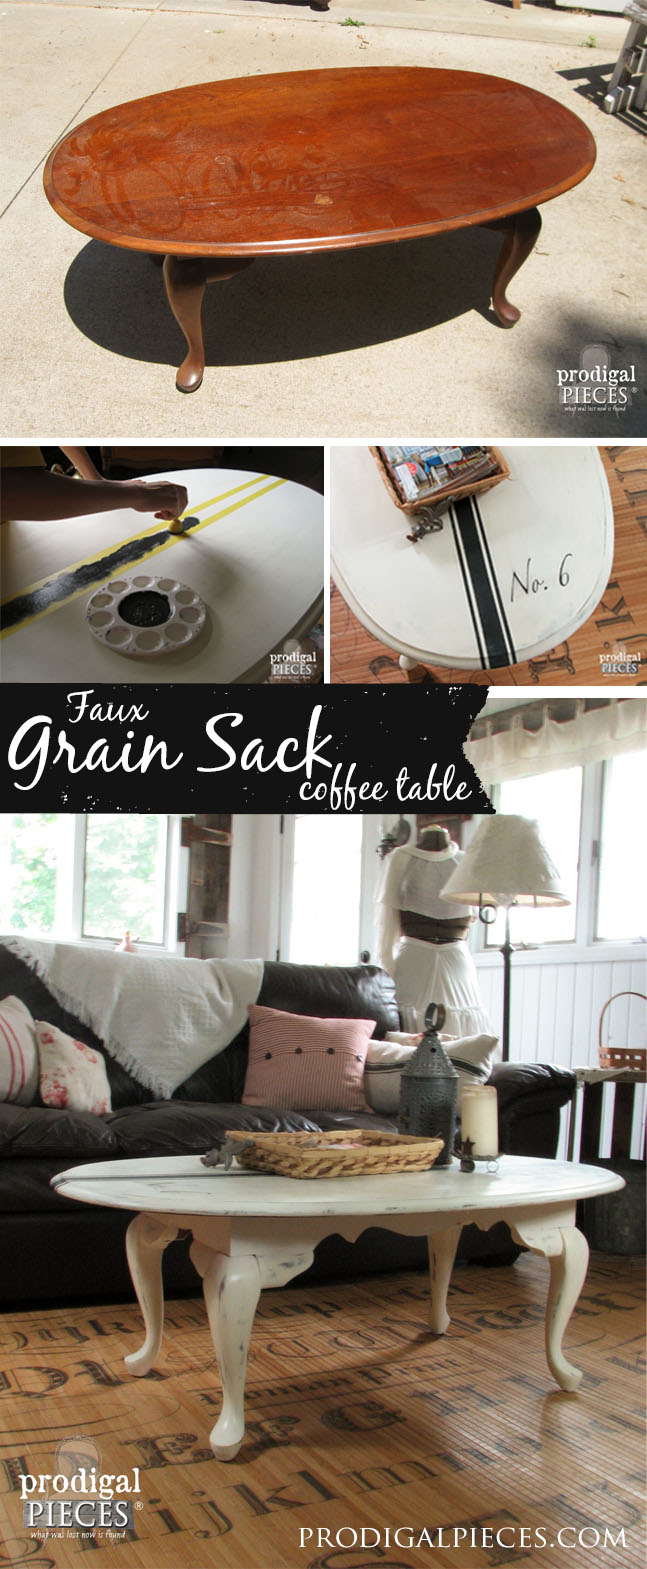 Create a Faux French Grain Sack Table with Tape and Paint - Let a teenager show you how! by Prodigal Pieces | prodigalpieces.com